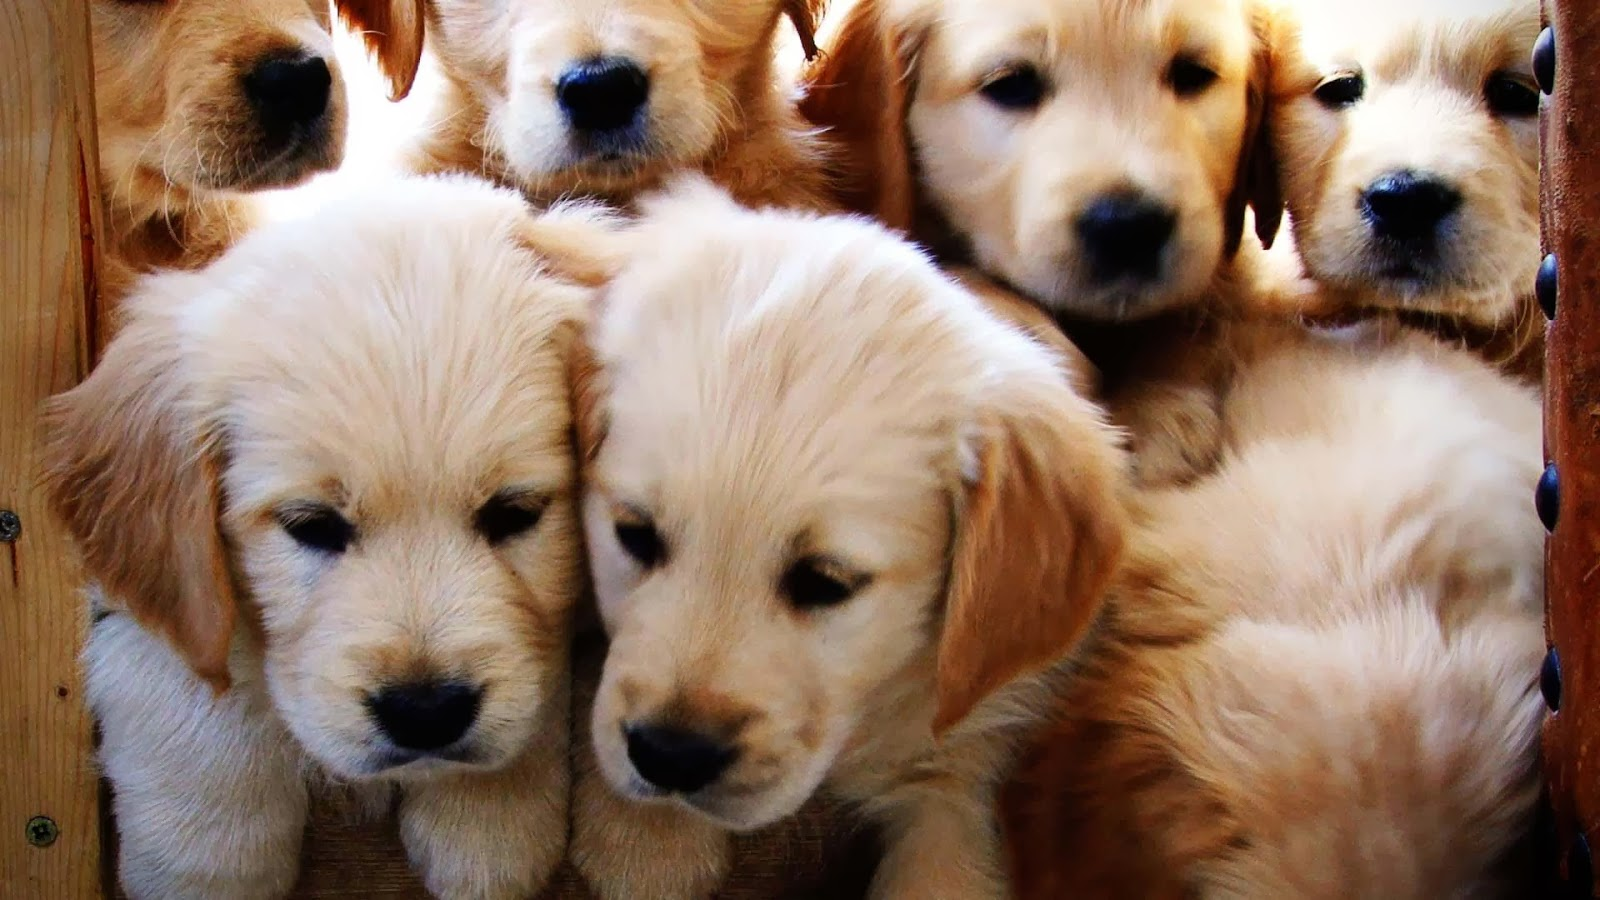 Cute Golden Retriever Puppies Wallpaper Image